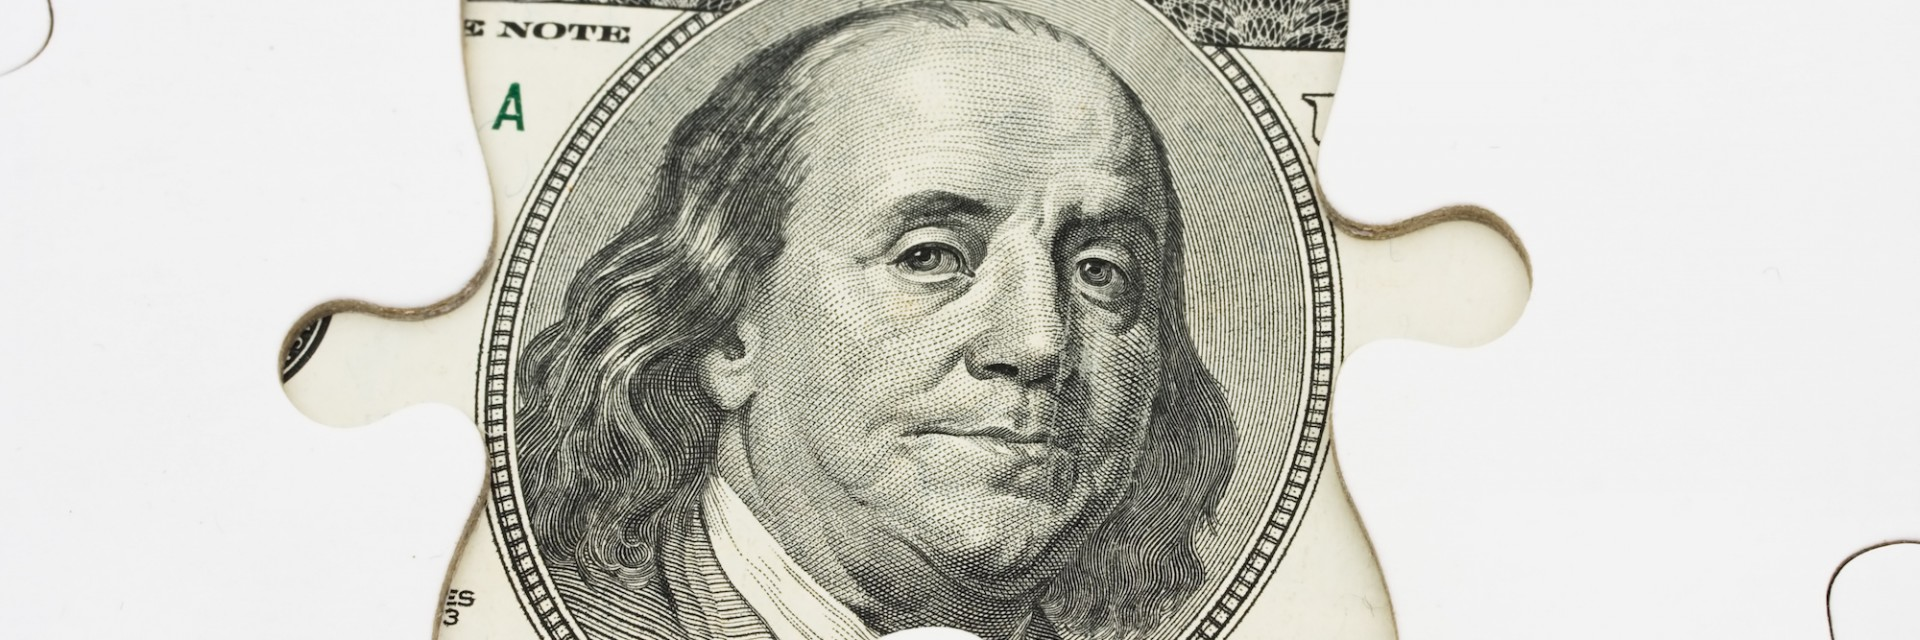 Ben Franklin on a $20 note covered by jigsaw pieces